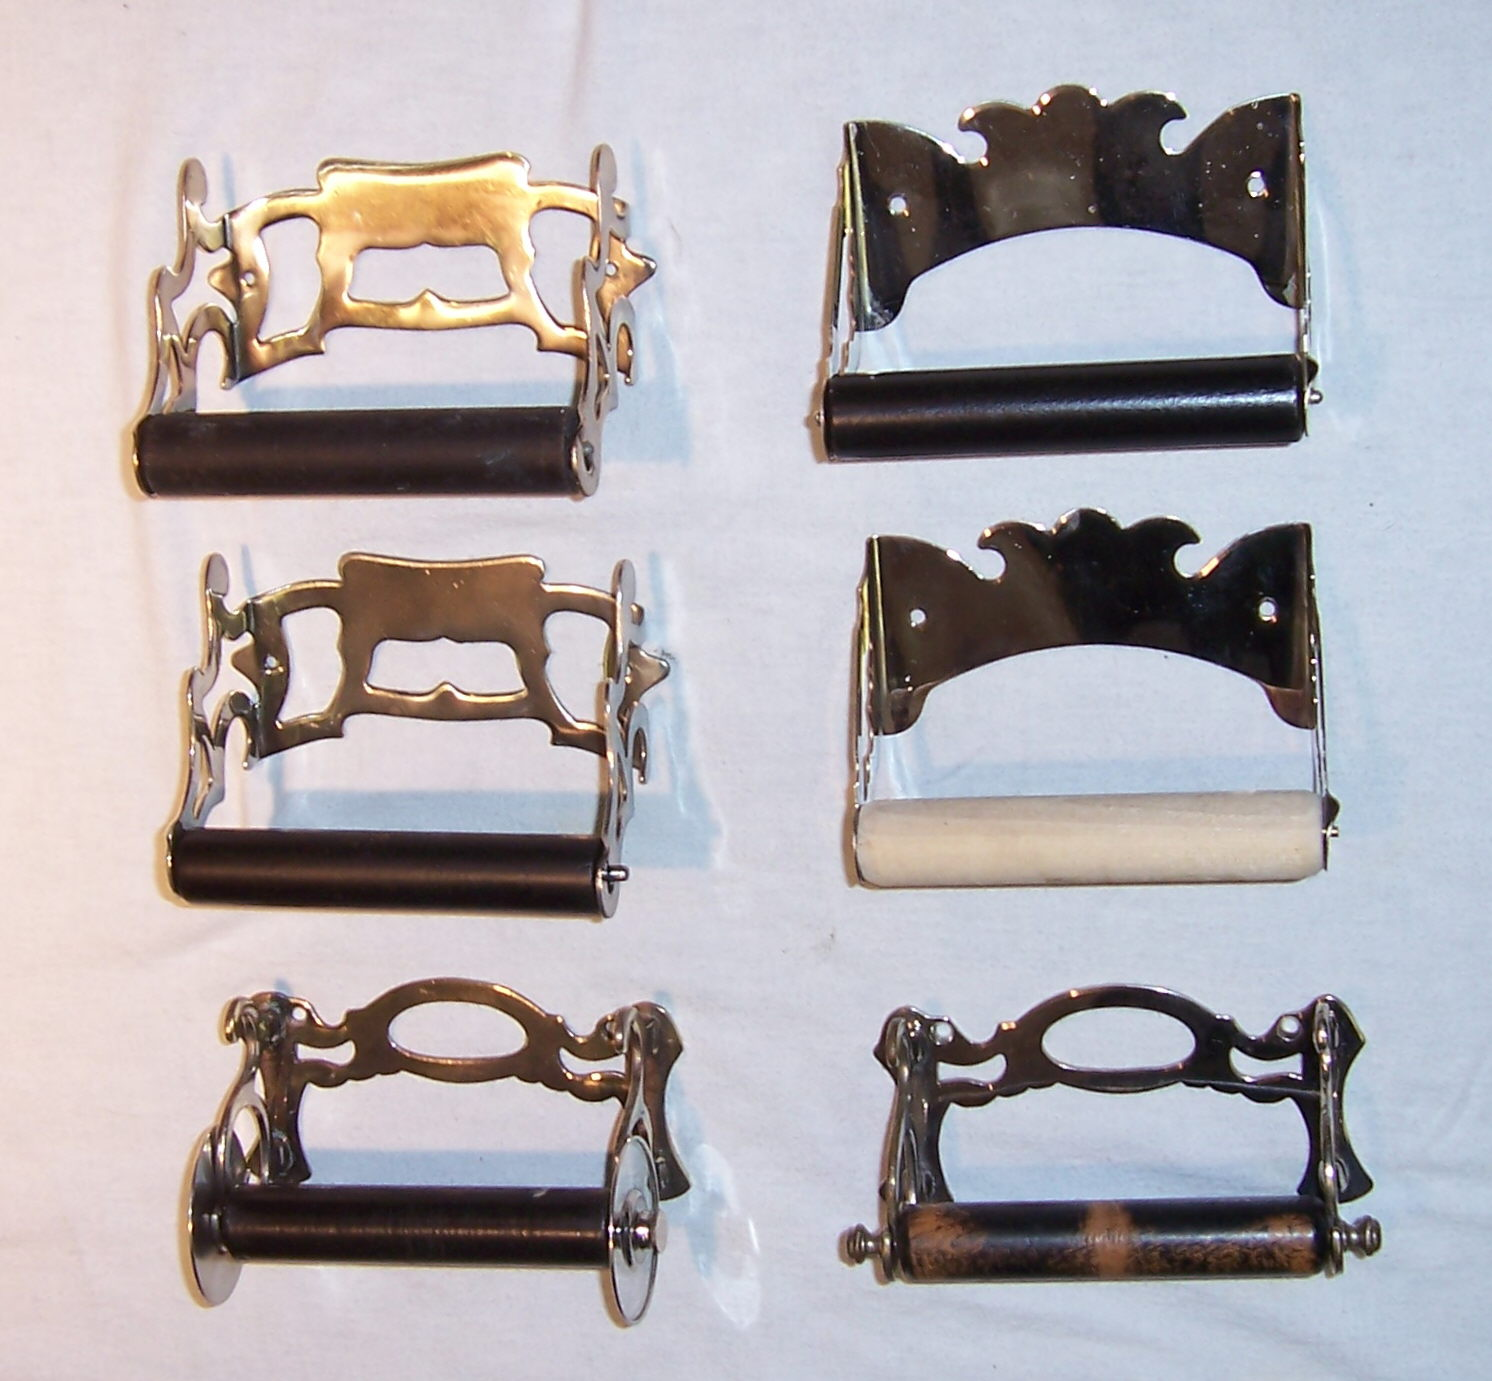 Antique Toilet Paper Dispenser Toilet Paper Holders Vintagebathroom